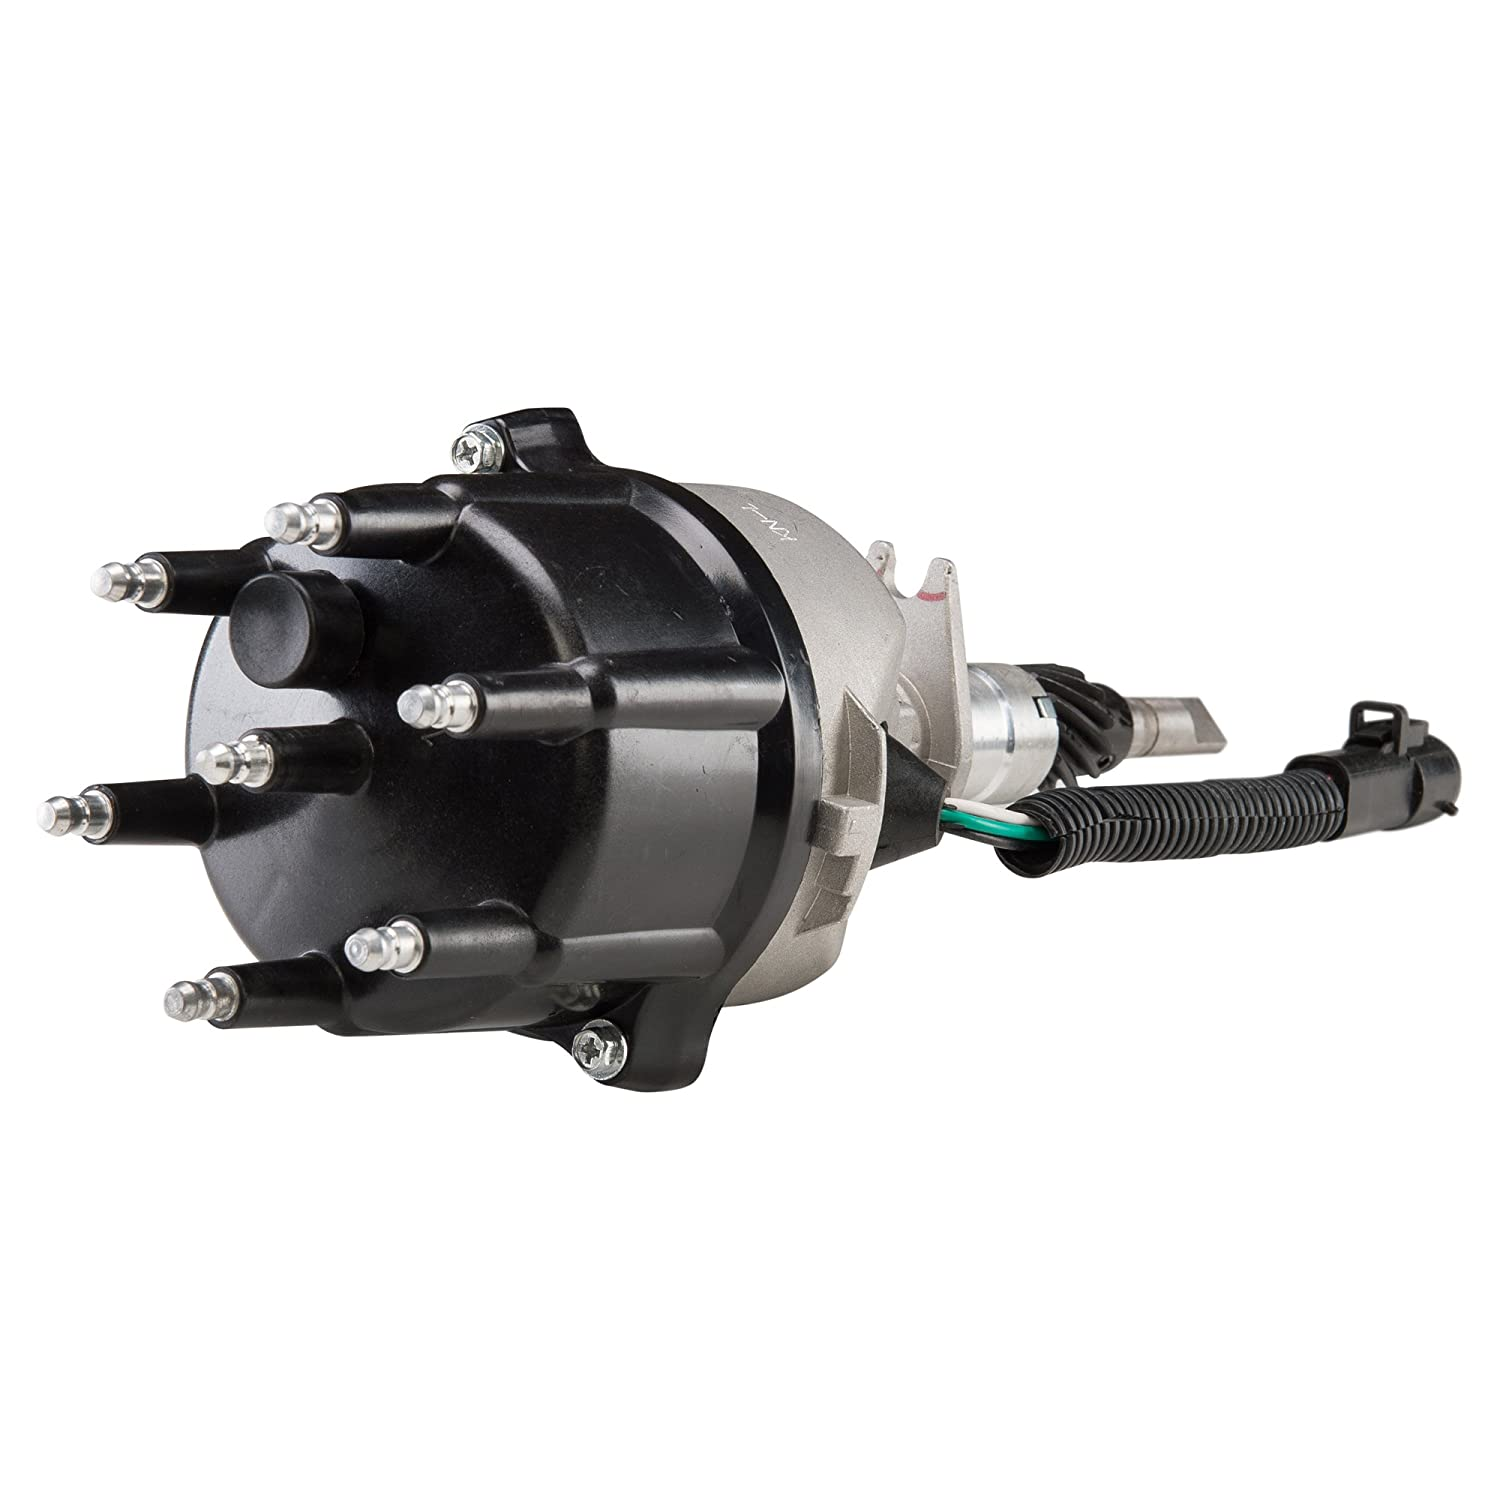 33004592//53007190 Ignition Distributor for 1987-1990 Jeep Cherokee Comanche Wagoneer 4.0L fits 33004182//33004589